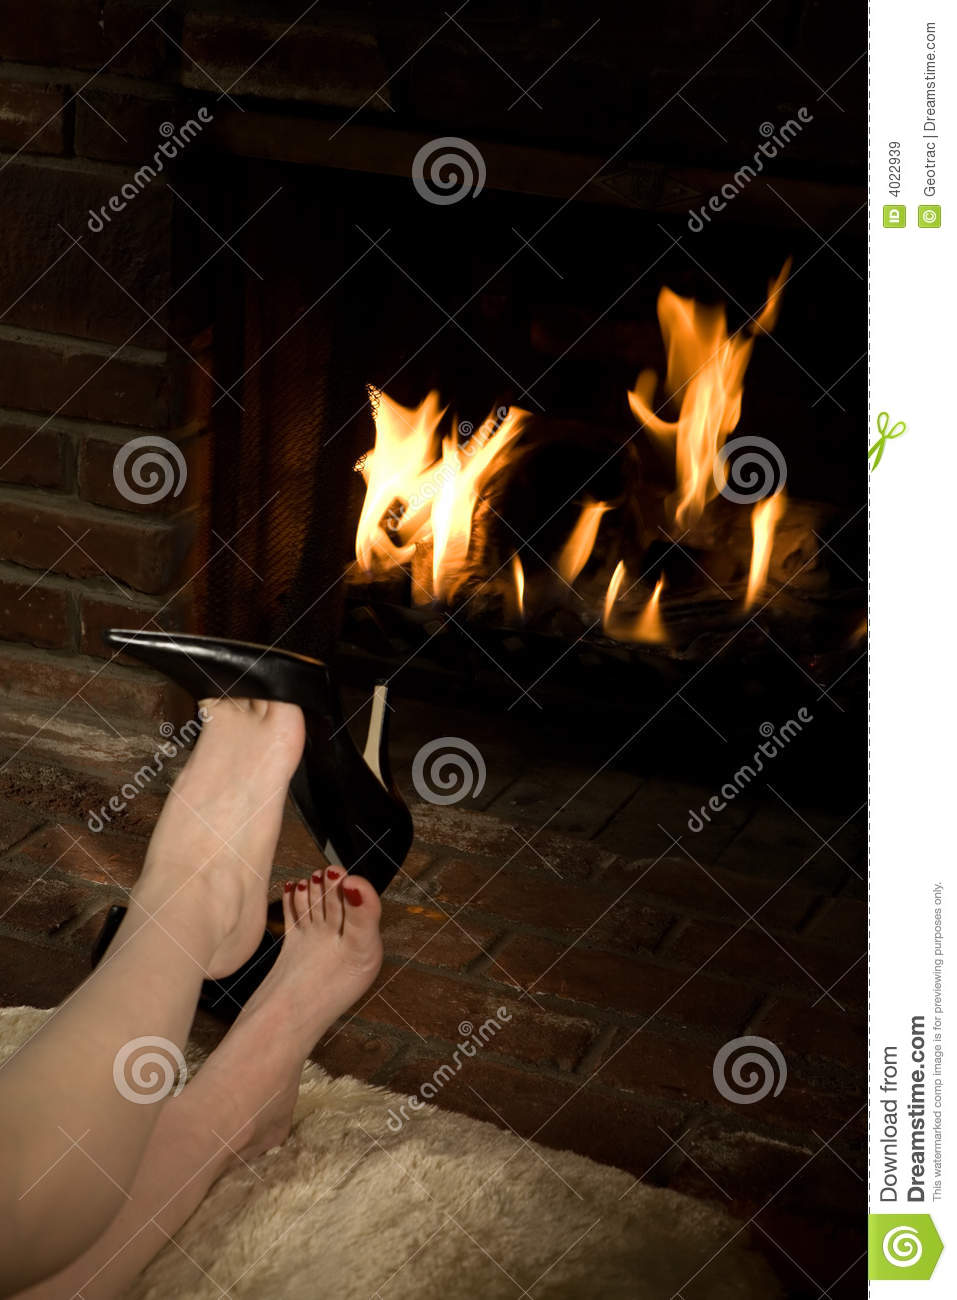 Removing shoes by fire